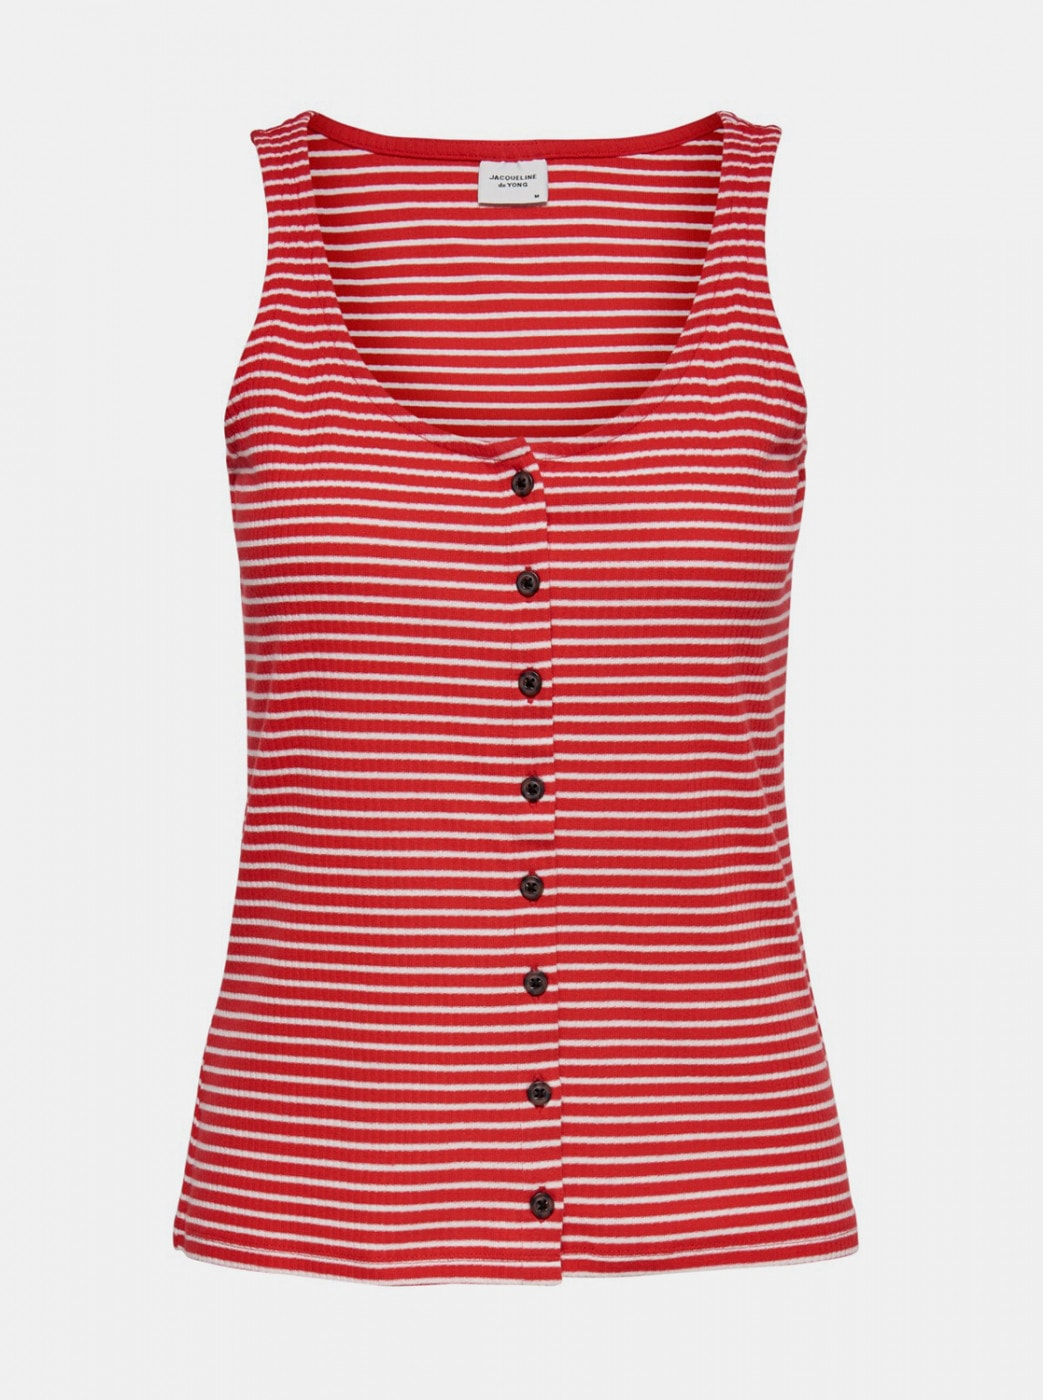 Jacqueline de Yong Nevada Red Striped Tank Top